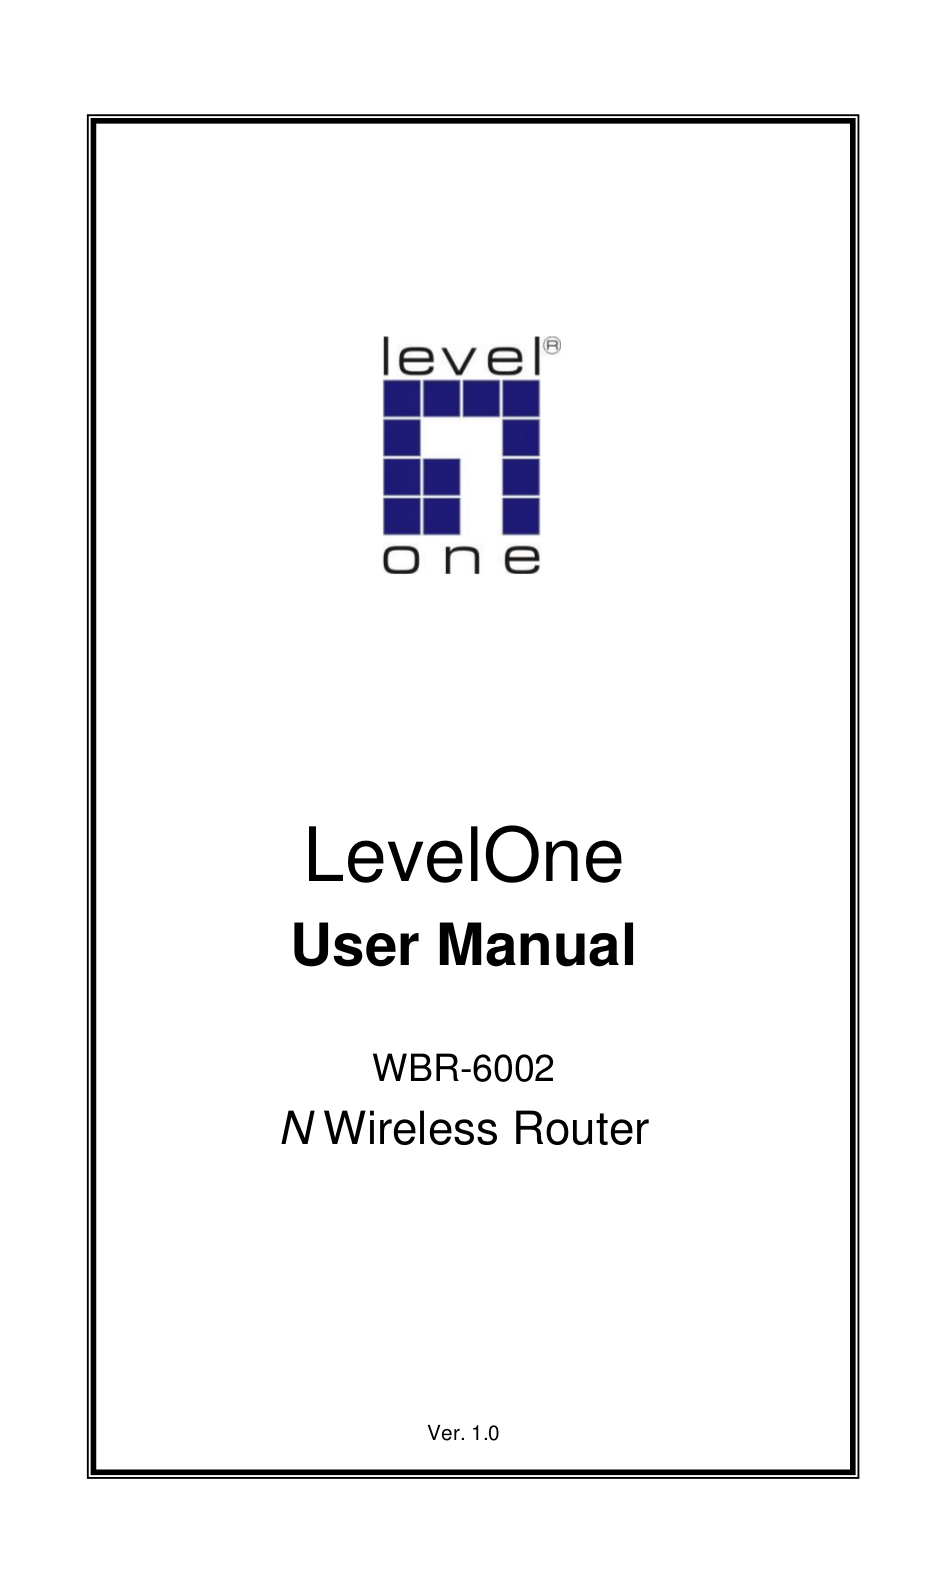 Download free pdf for LevelOne WBR-6002 Wireless Router manual